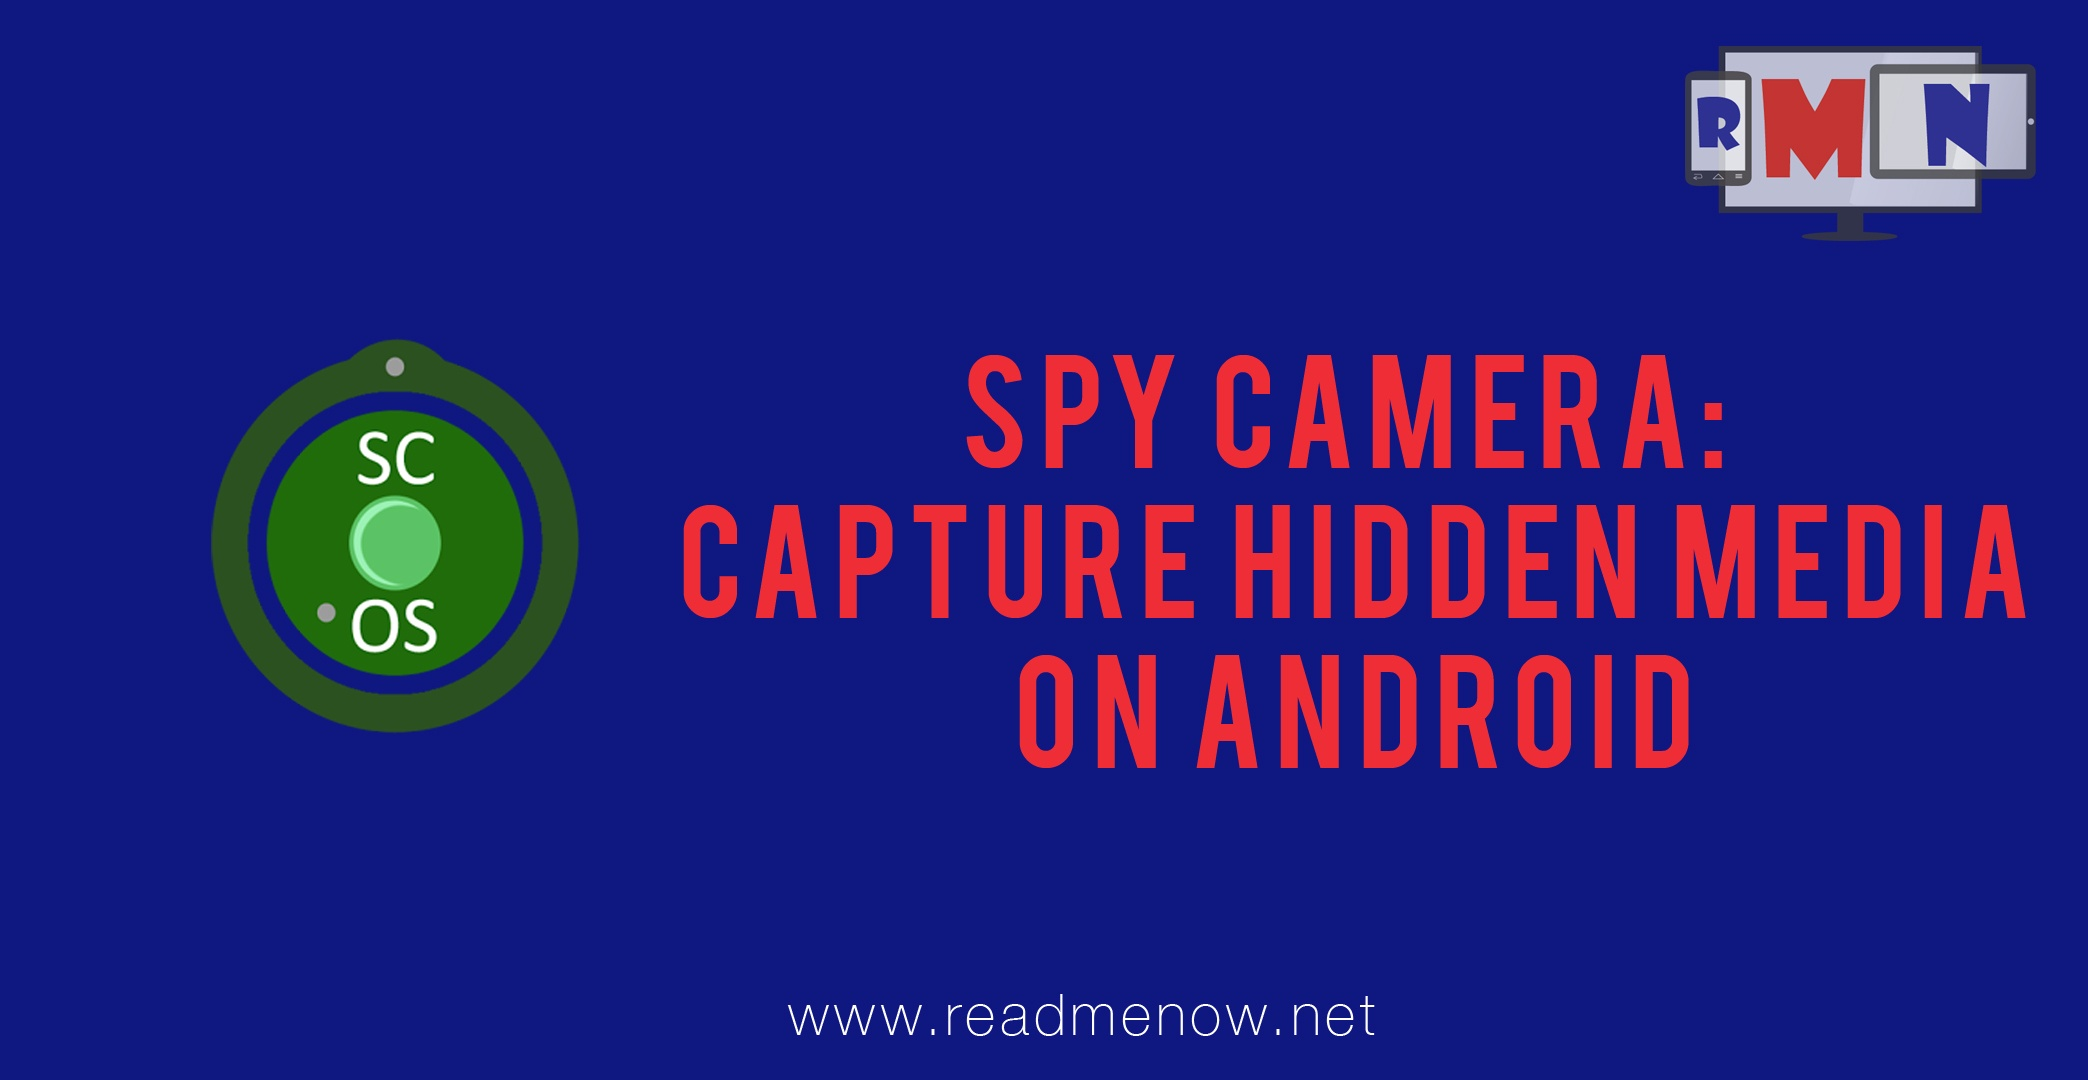 Spy Camera: Capture Hidden Media on Android